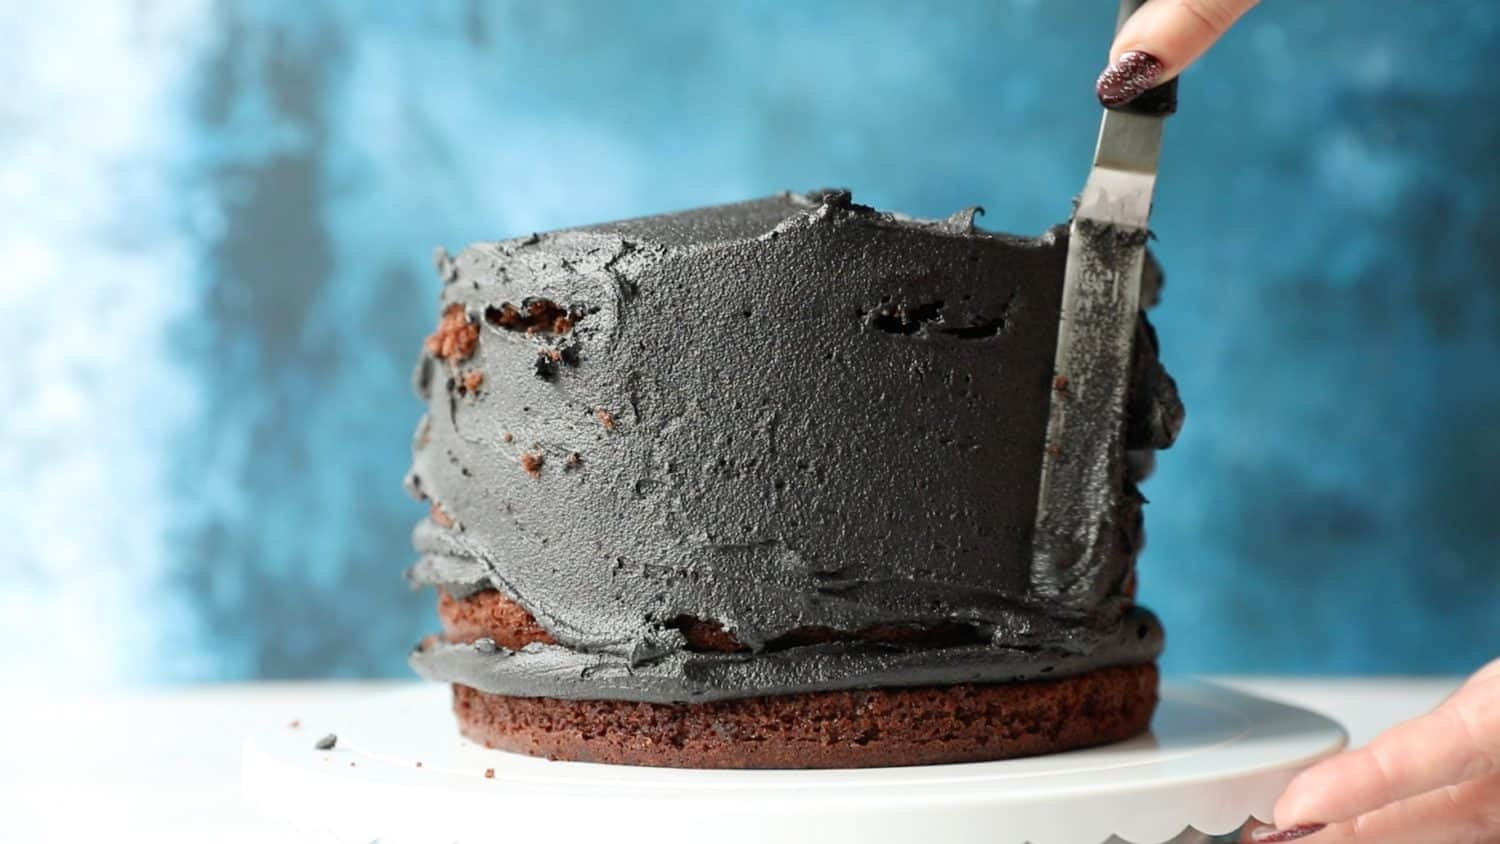 A five layer chocolate cake that has been covered in black buttercream icing. The icing is being spread over the cake using a spatula.